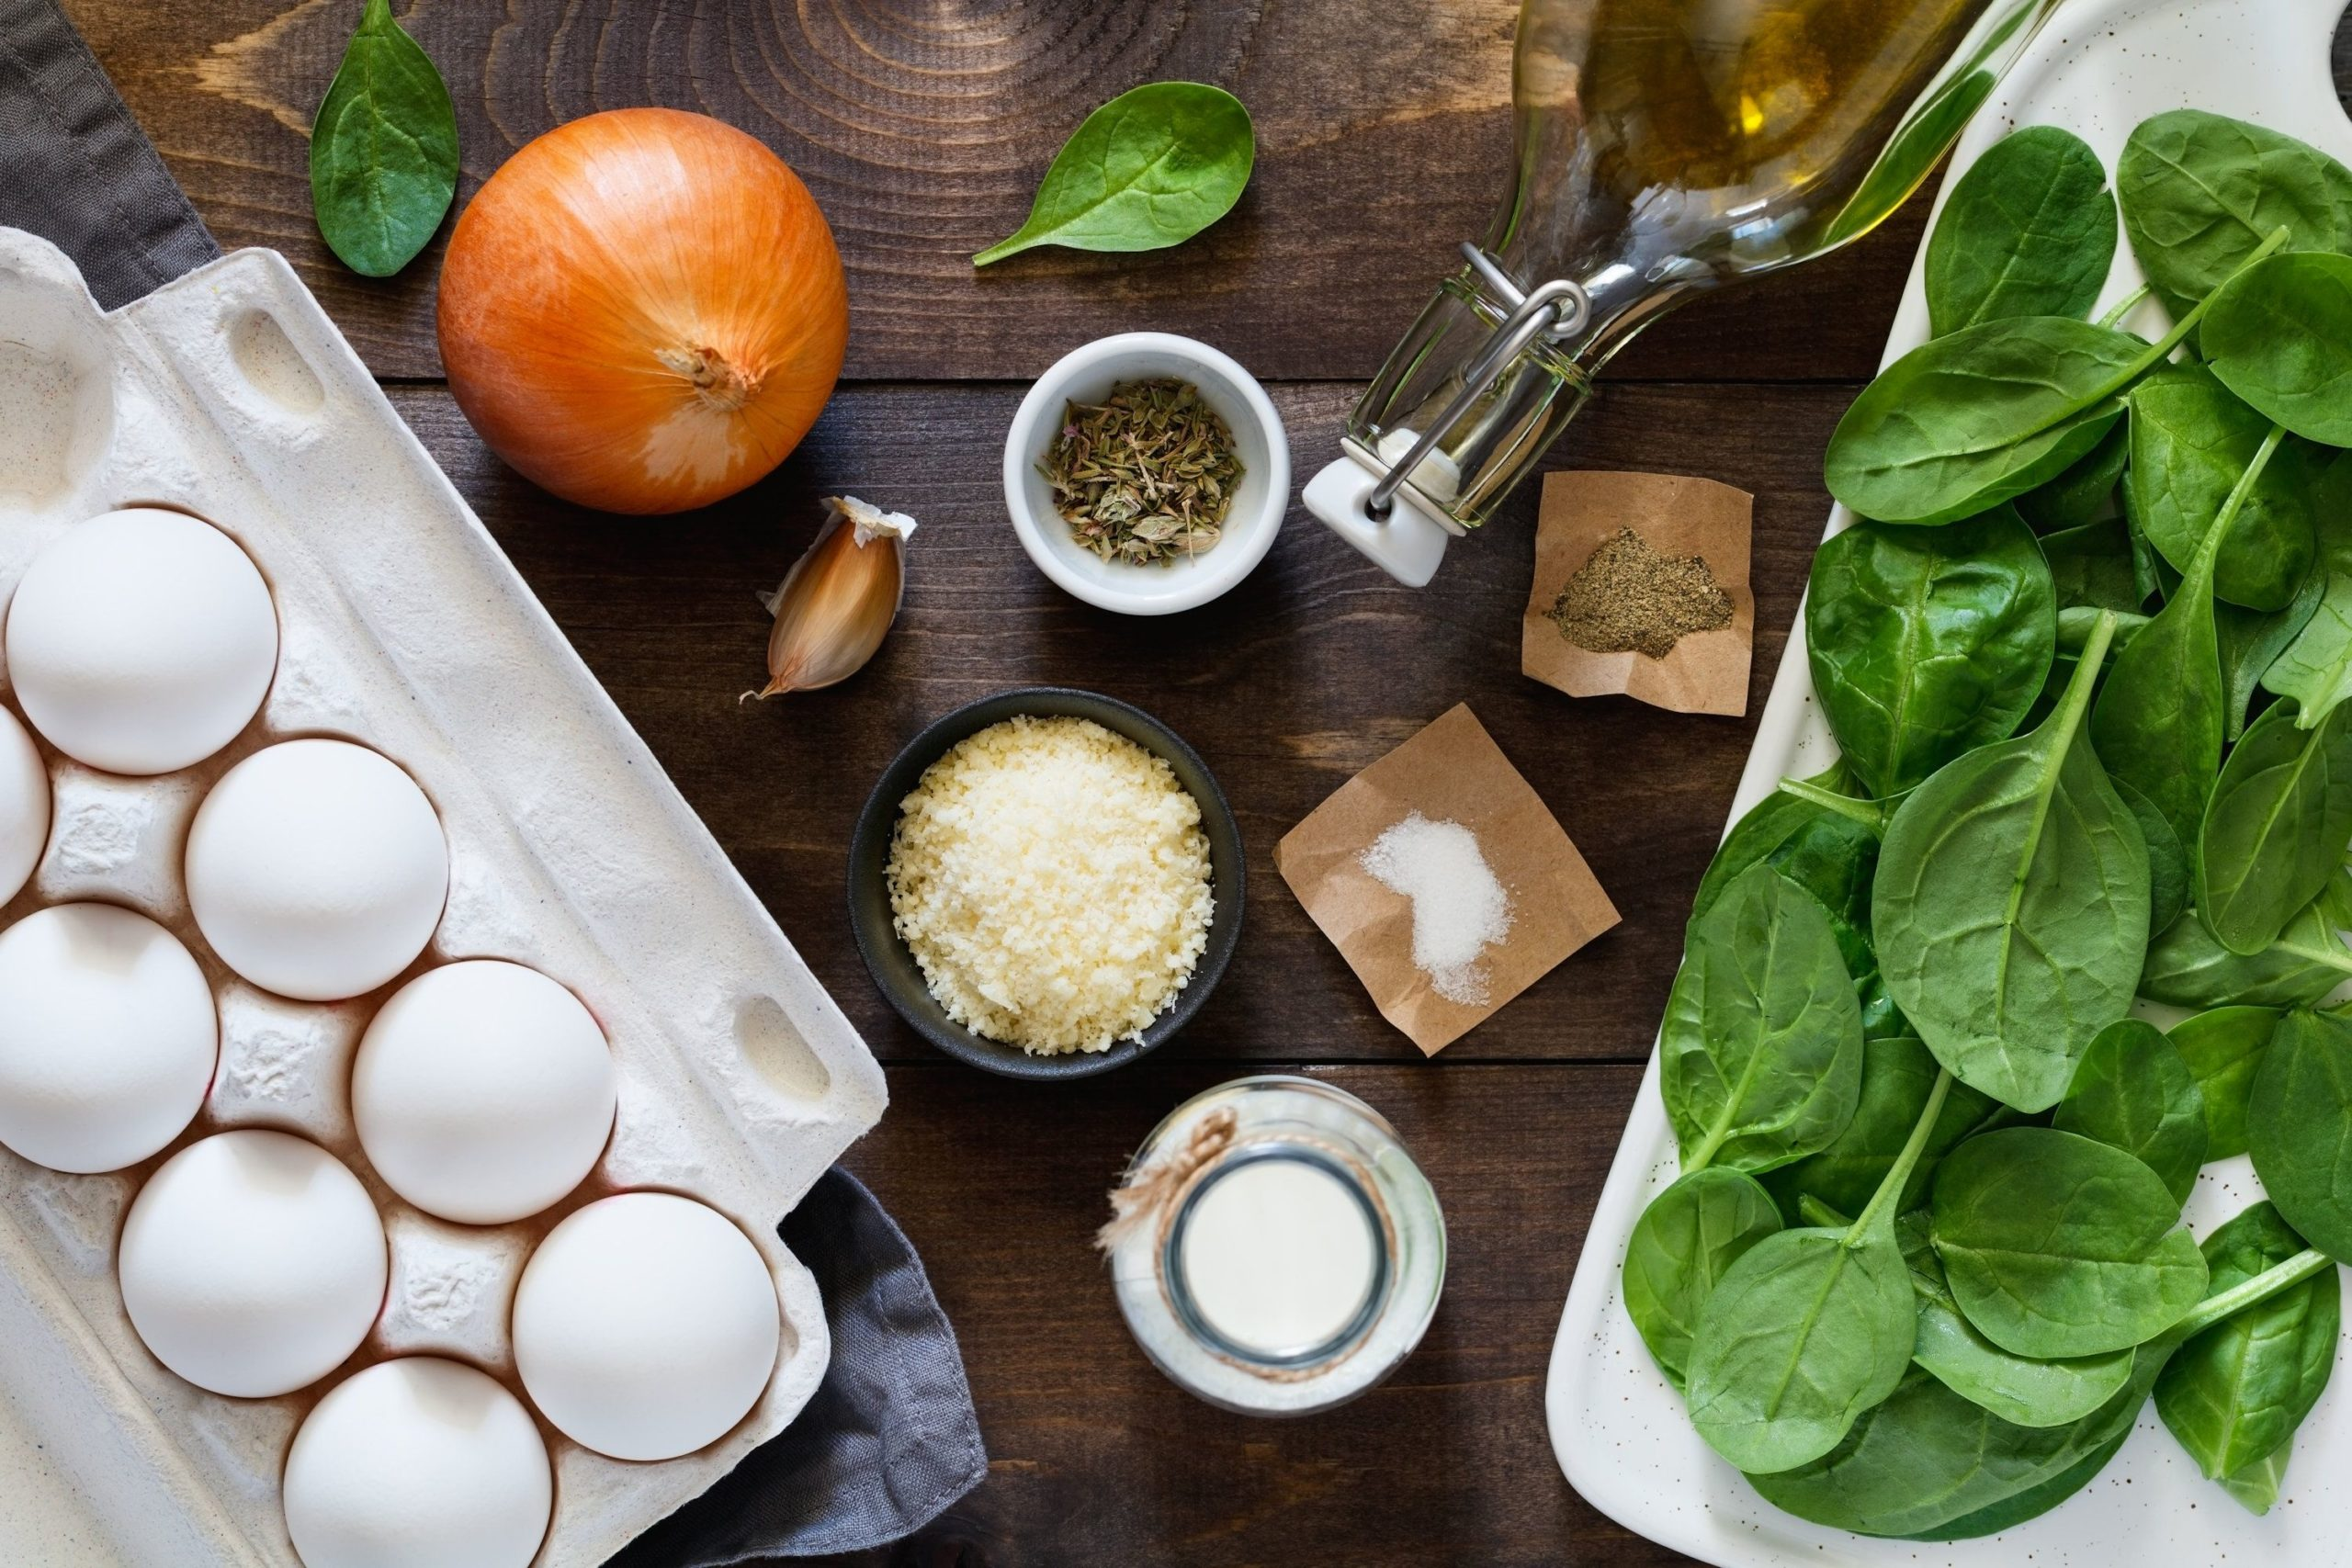 Ingredients for making scrambled eggs with baby spinach